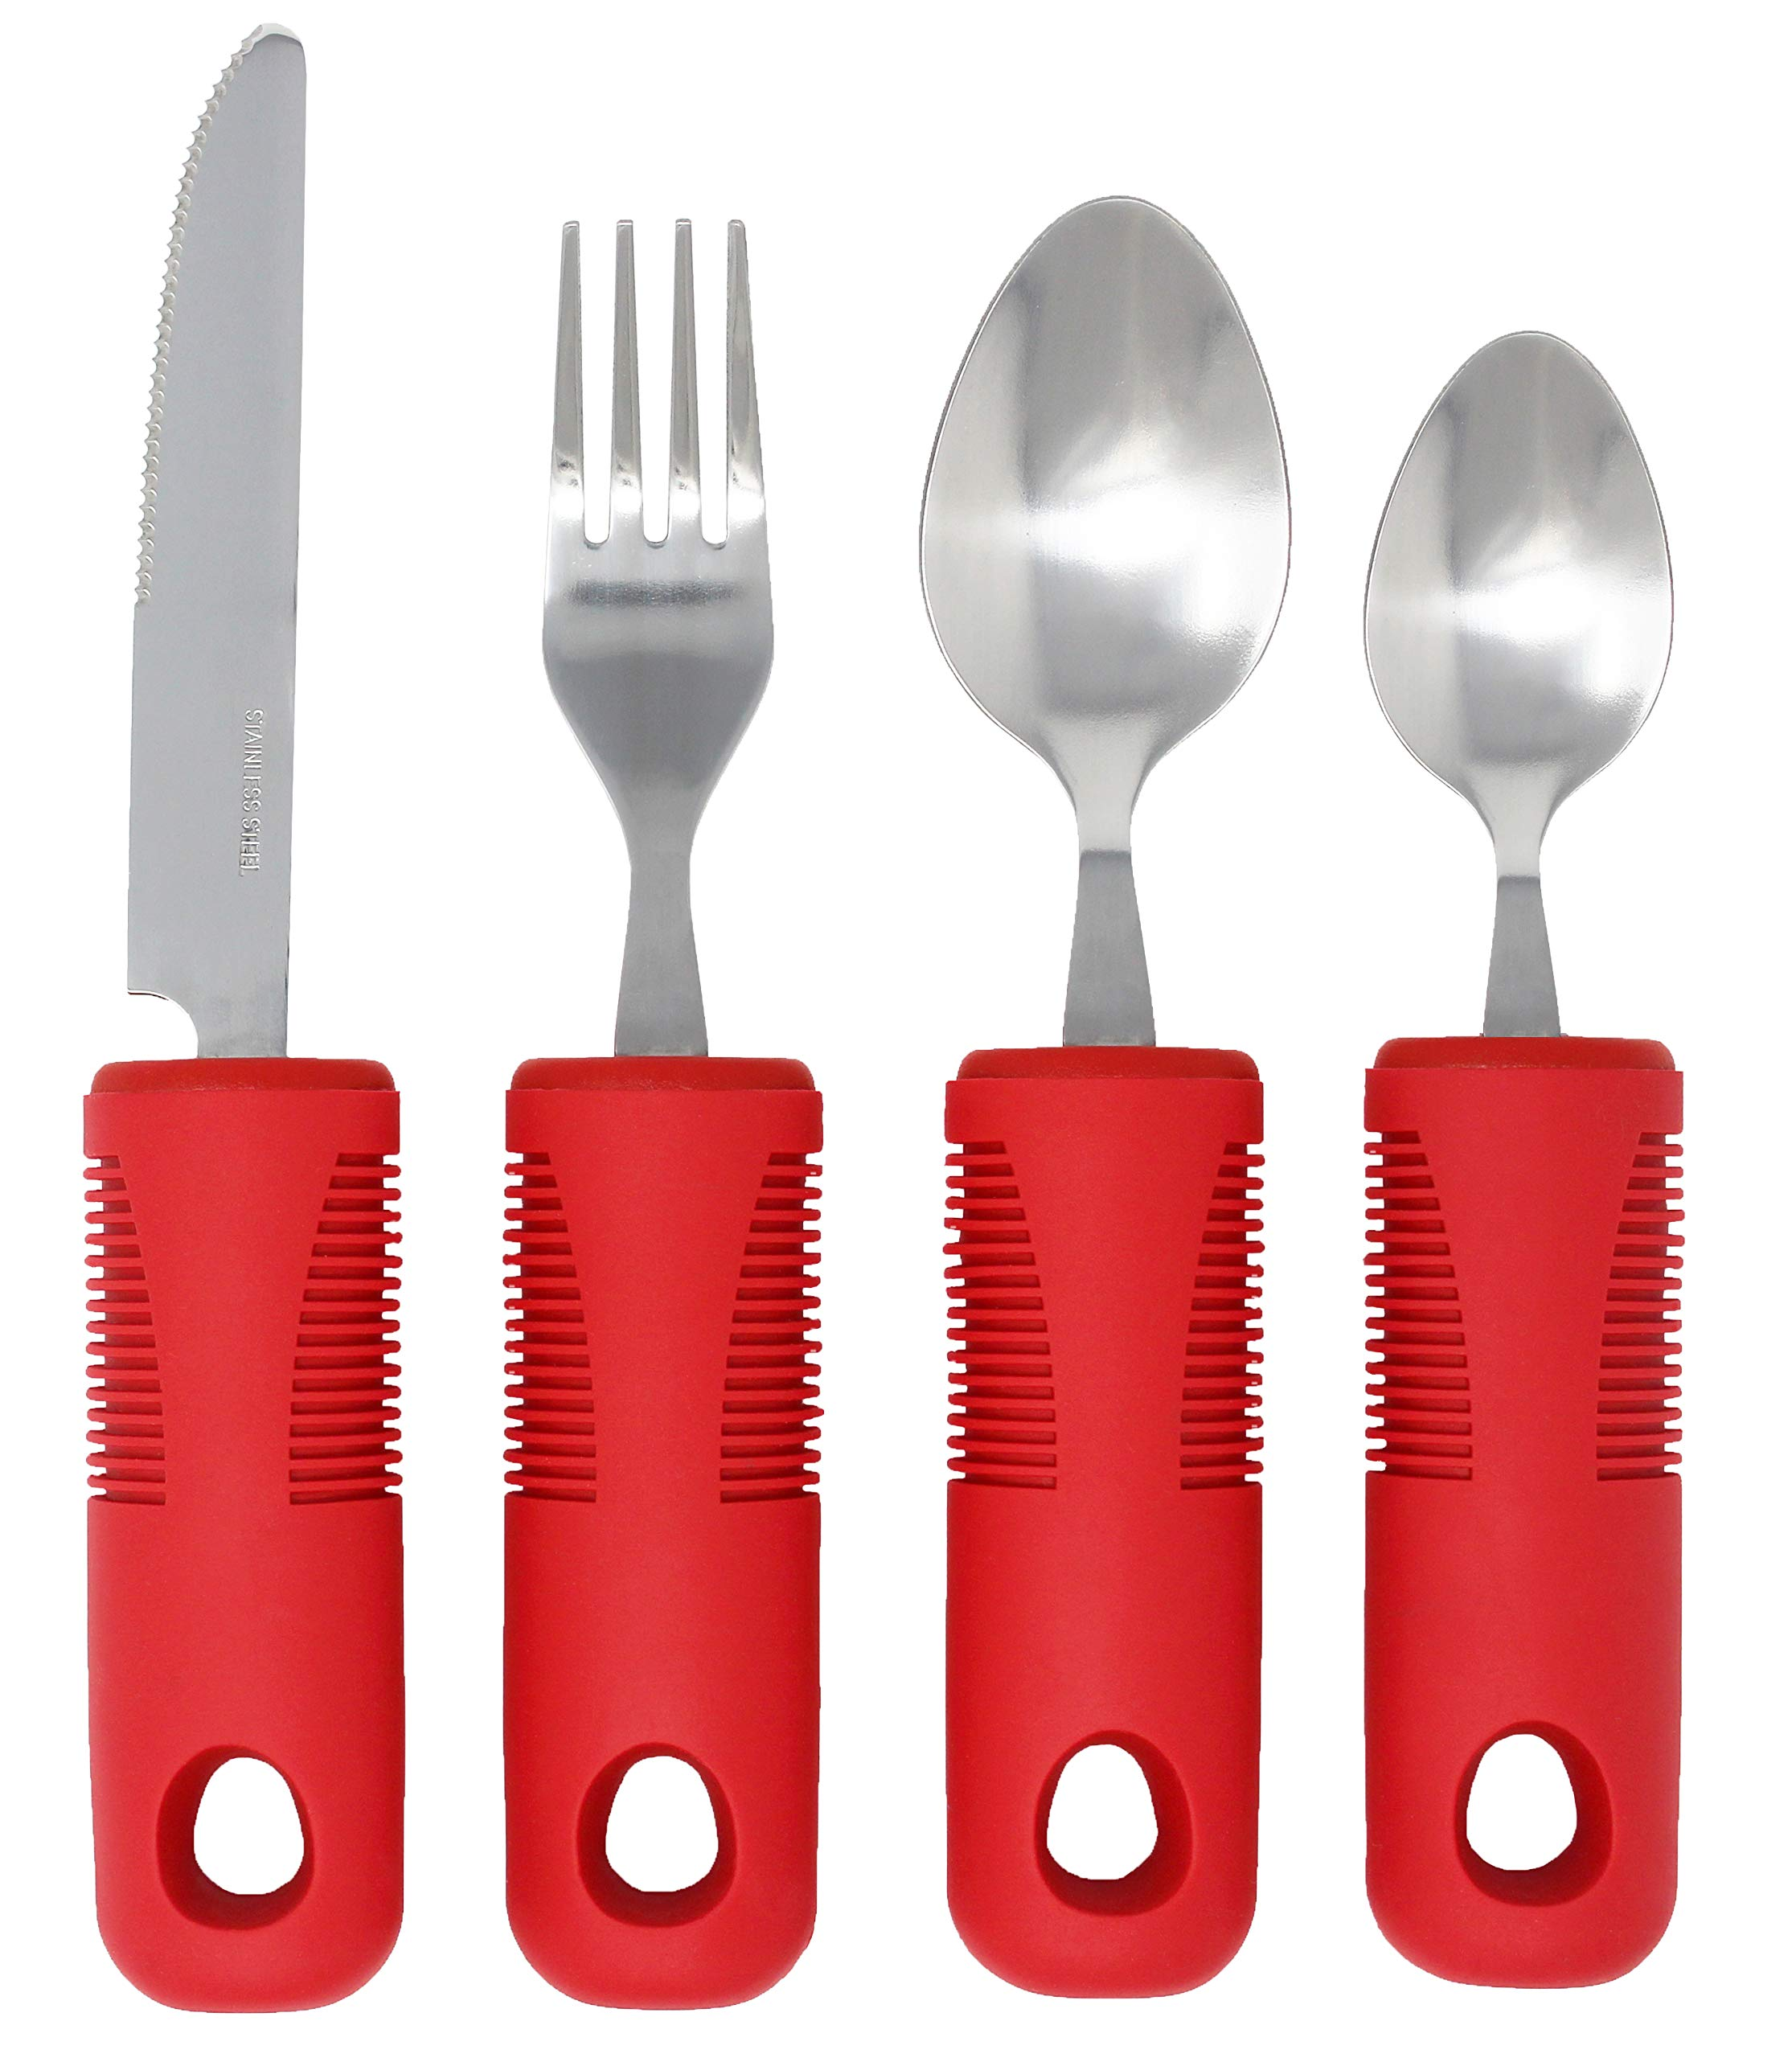 Adaptive Utensils (4-Piece Kitchen Set) Wide, Non-Weighted, Non-Slip Handles for Hand Tremors, Arthritis, Parkinson's or Elderly use | Stainless Steel Knife, Fork and Spoons (Red - 1 Set)